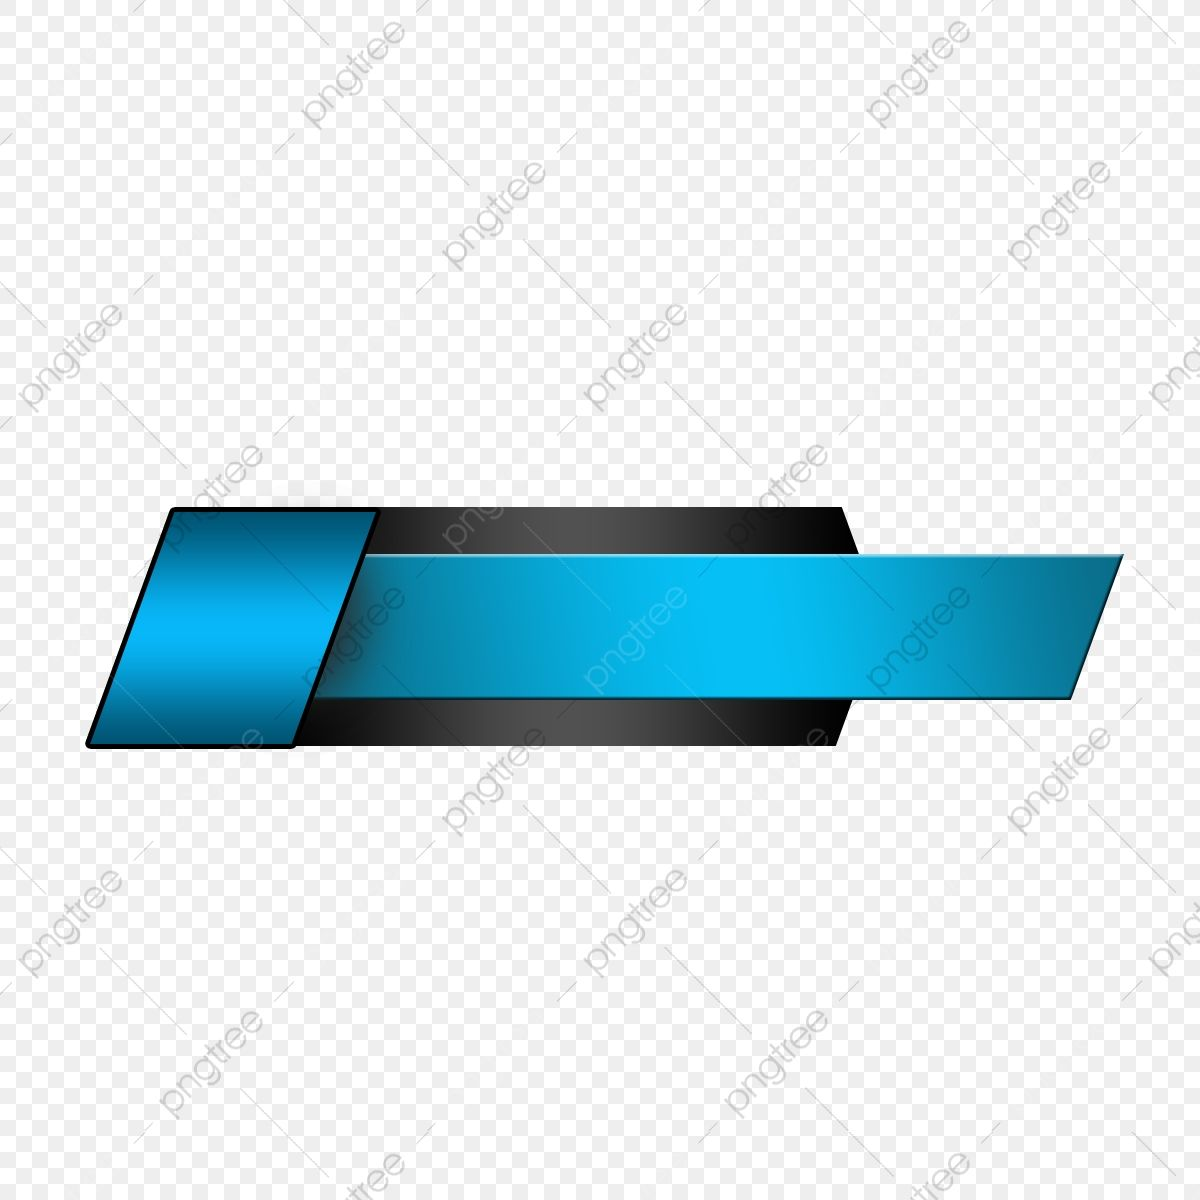 Lower Third Label Social Media Video Banner Graphic Lower Third Png Transparent Clipart Image And Psd File For Free Download In 2021 Social Media Video Lower Thirds Clipart Images